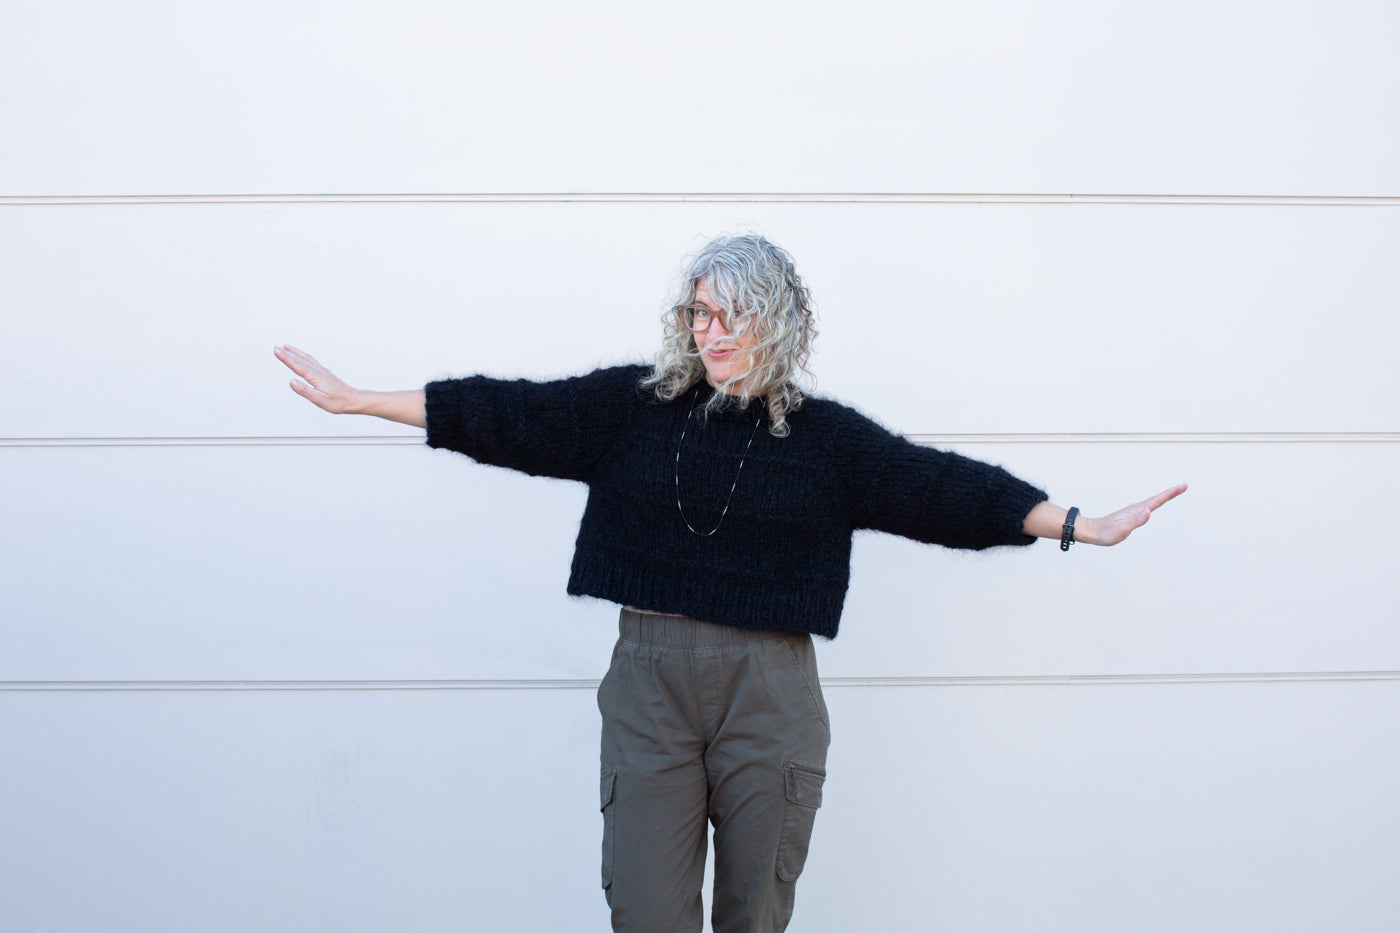 Jaime wearing a black fuzzy wool sweater with her arms out, wearing army green pants standing in front of a white wall.